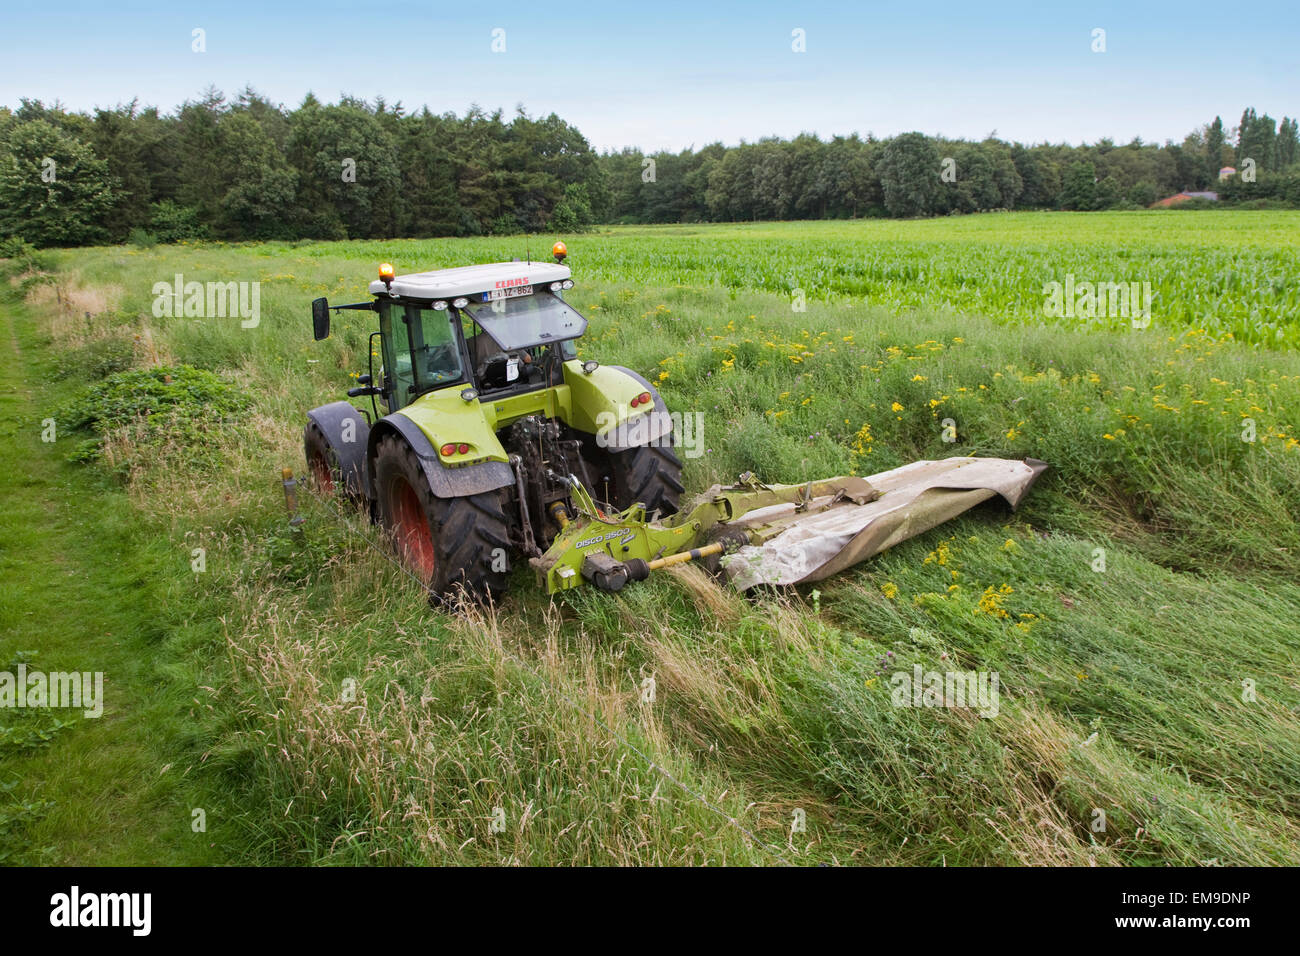 Tractor with cutter bar / single-bar mower / sickle bar mower mowing grass in meadow - Stock Image